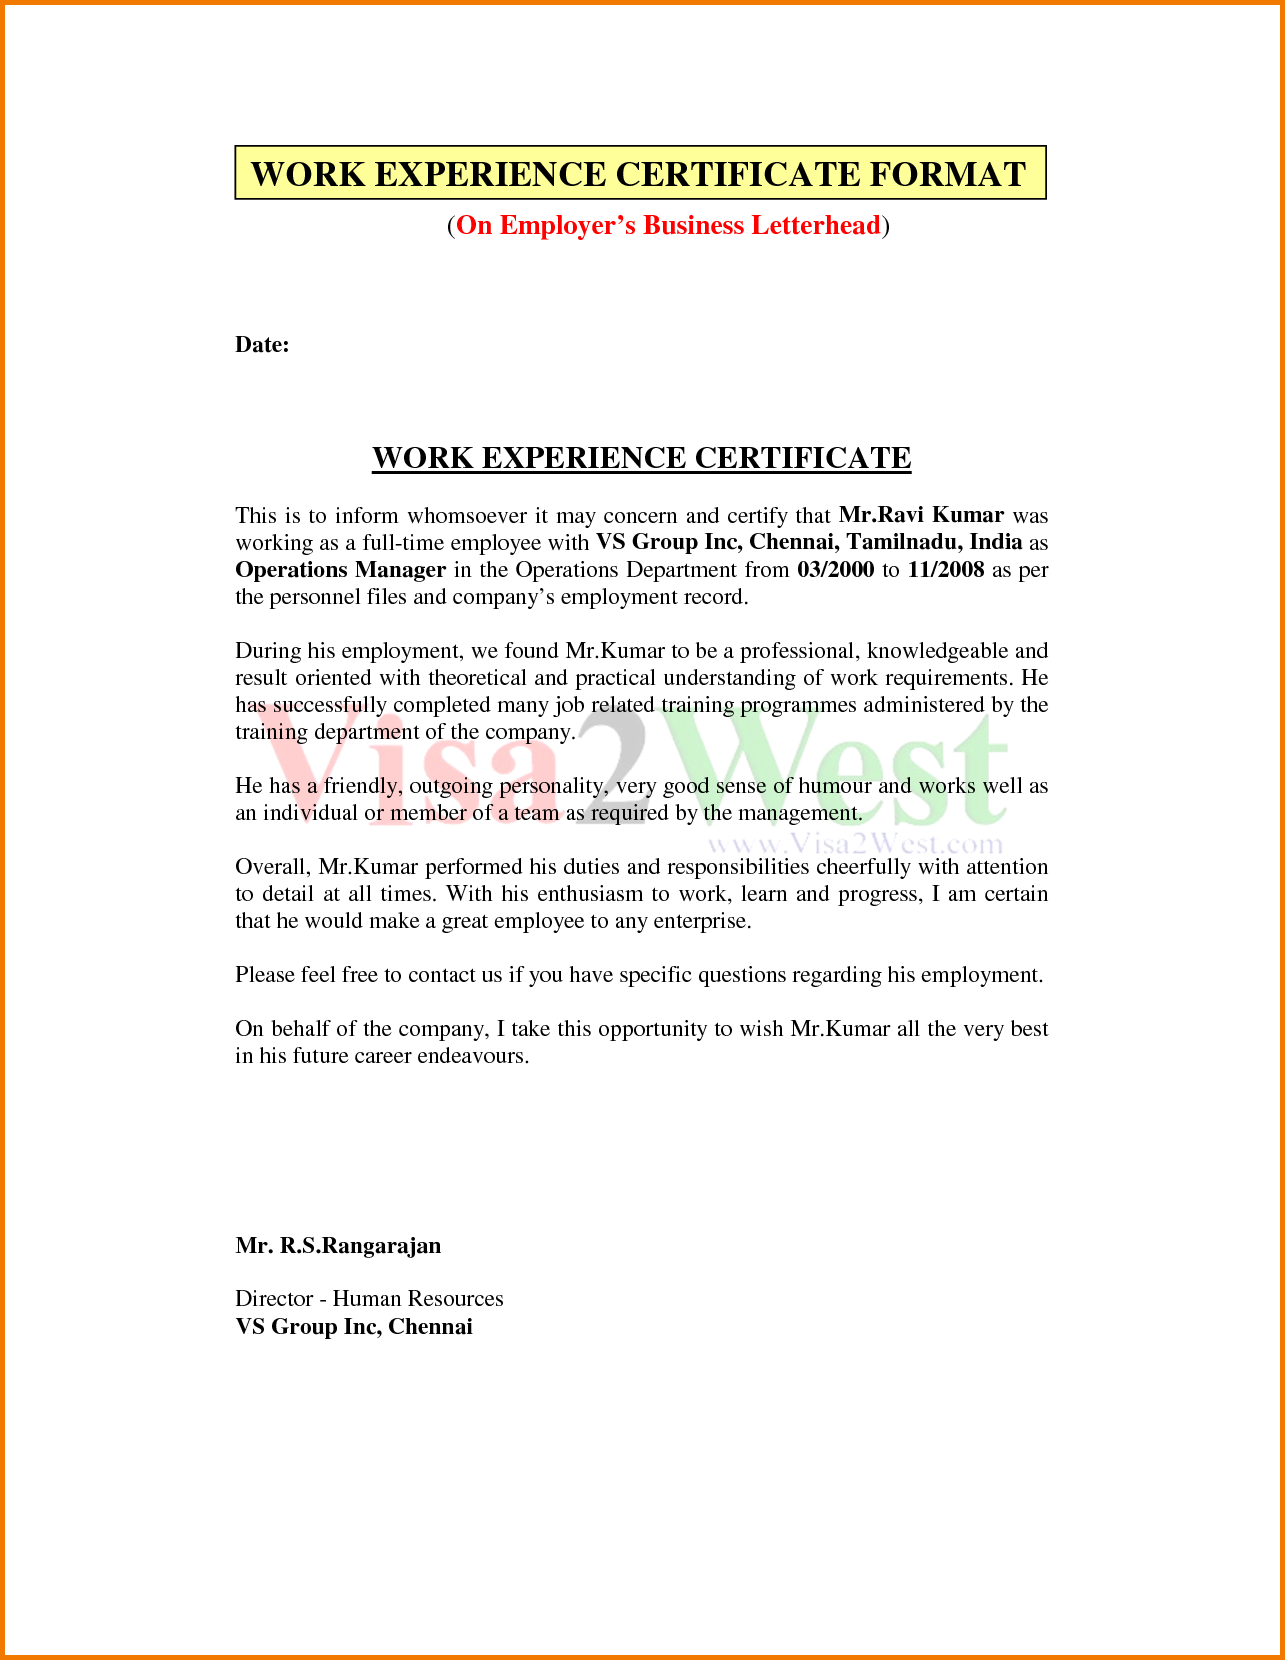 Letter format pdf financial statement form experience certificate letter format pdf financial statement form experience certificate application santorini laundry 1betcityfo Images